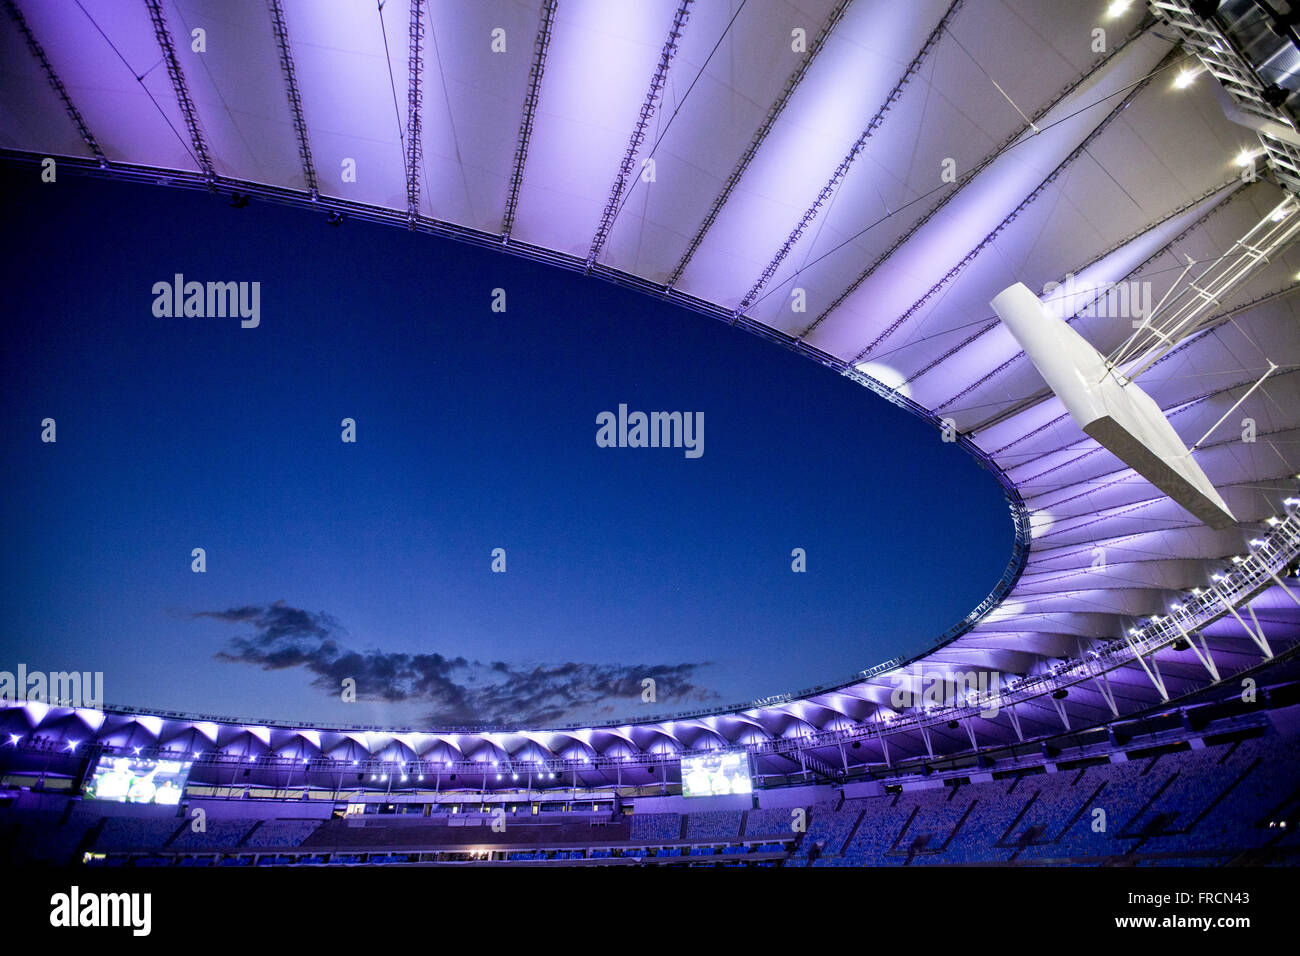 Rededication of the Maracana Stadium for World Cup 2014 - Stock Image